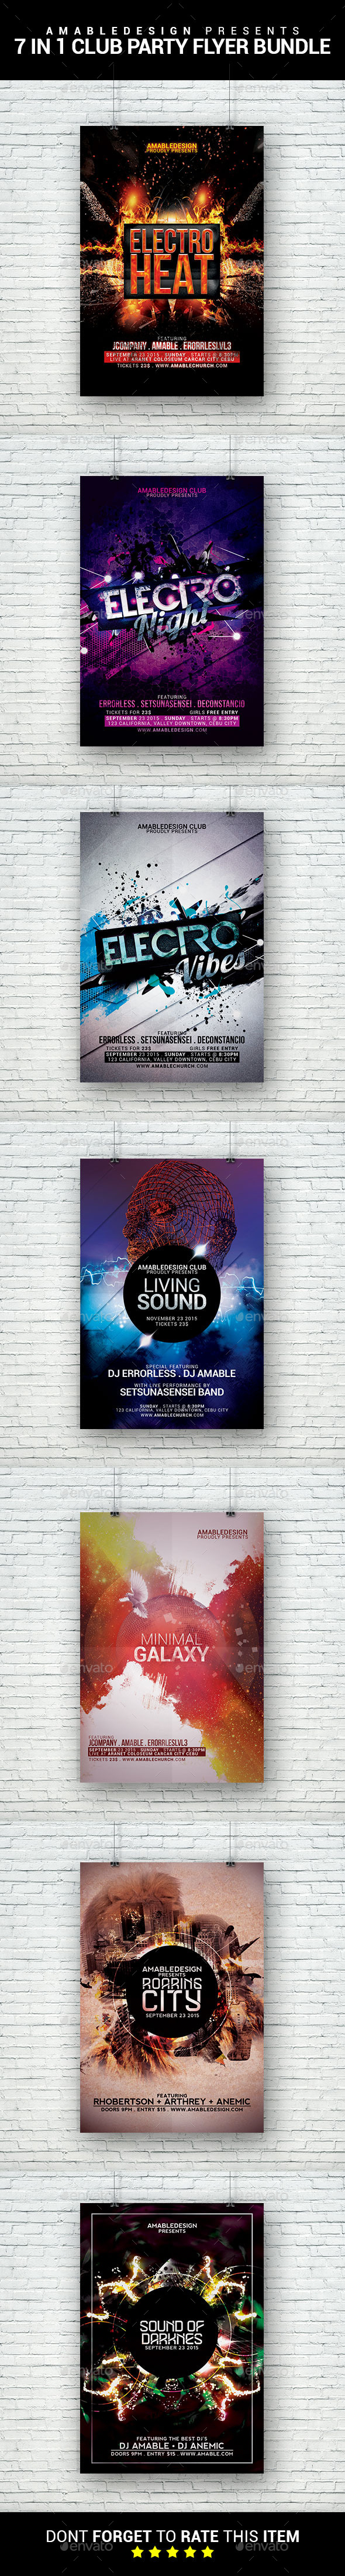 7 in 1 Club Parties Flyer Bundle - Clubs & Parties Events